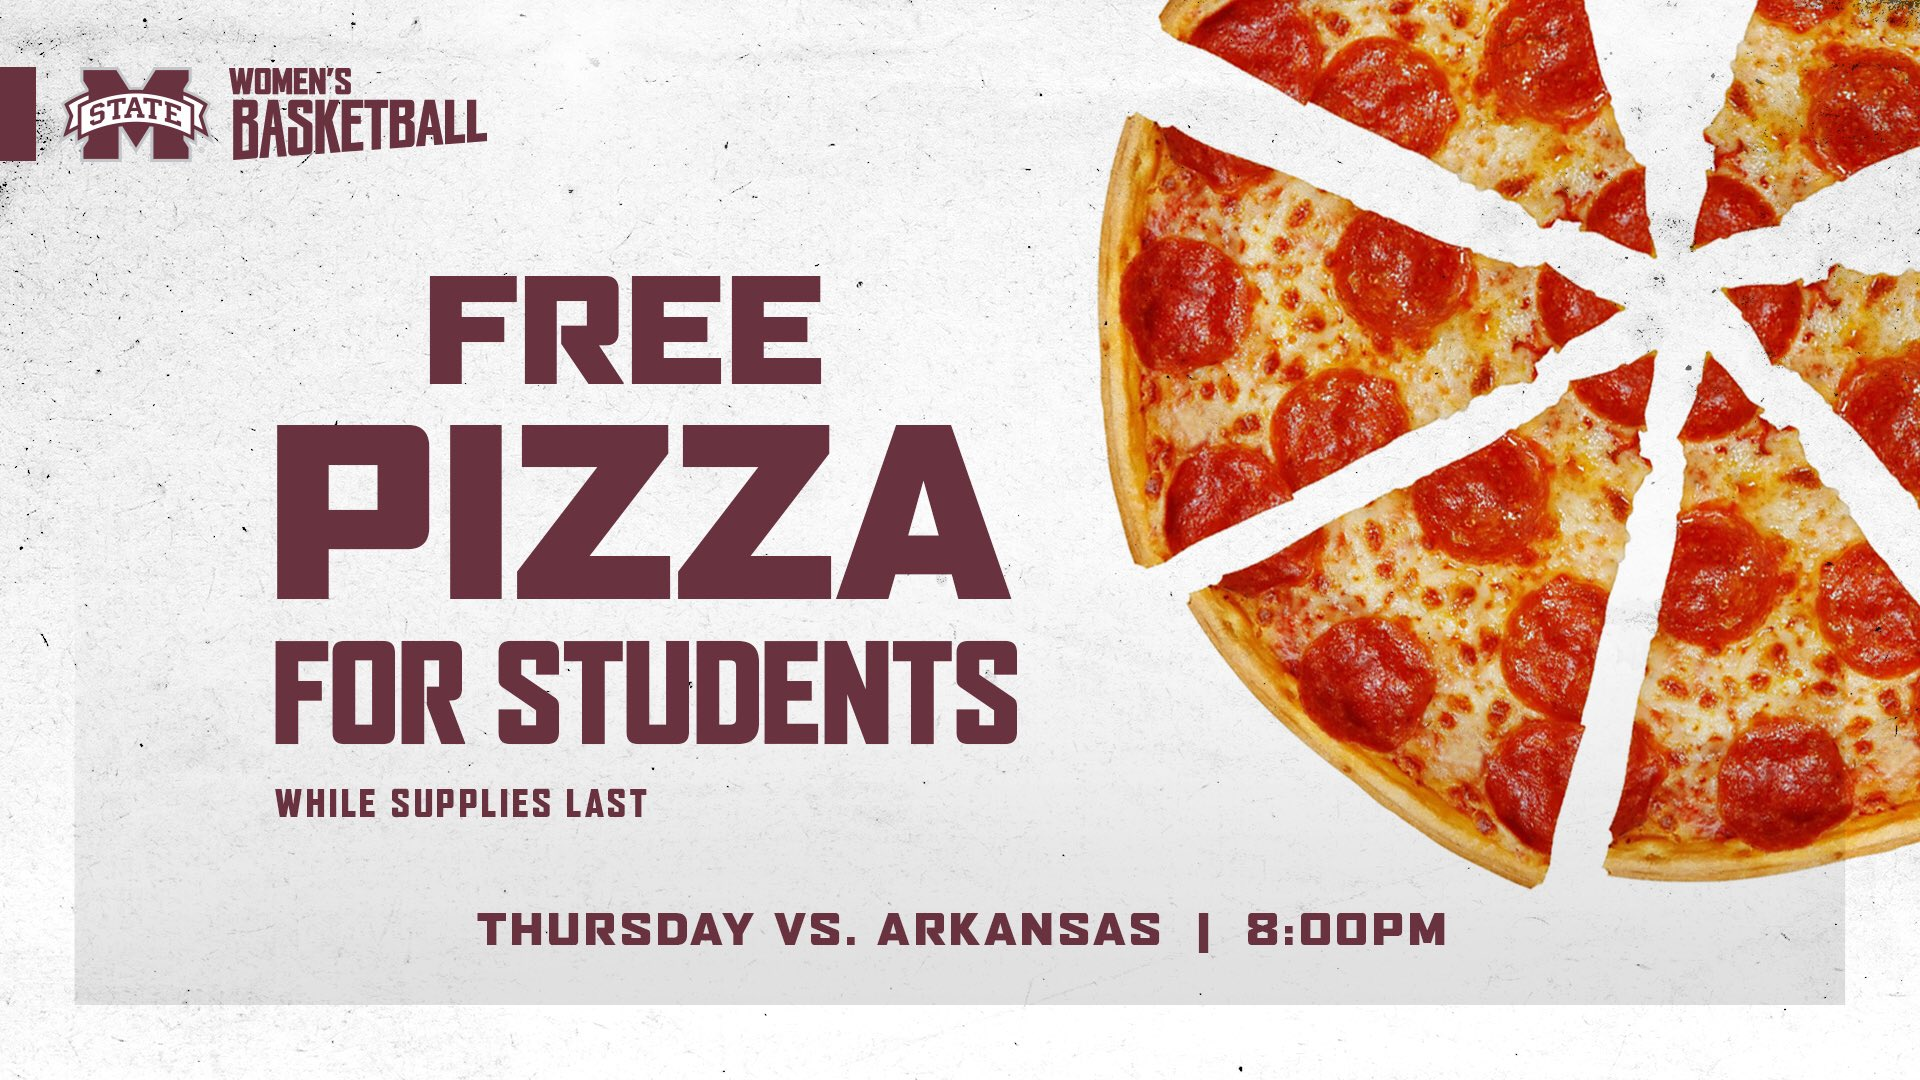 MSU Women's Basketball promotional graphic for pizza giveaway